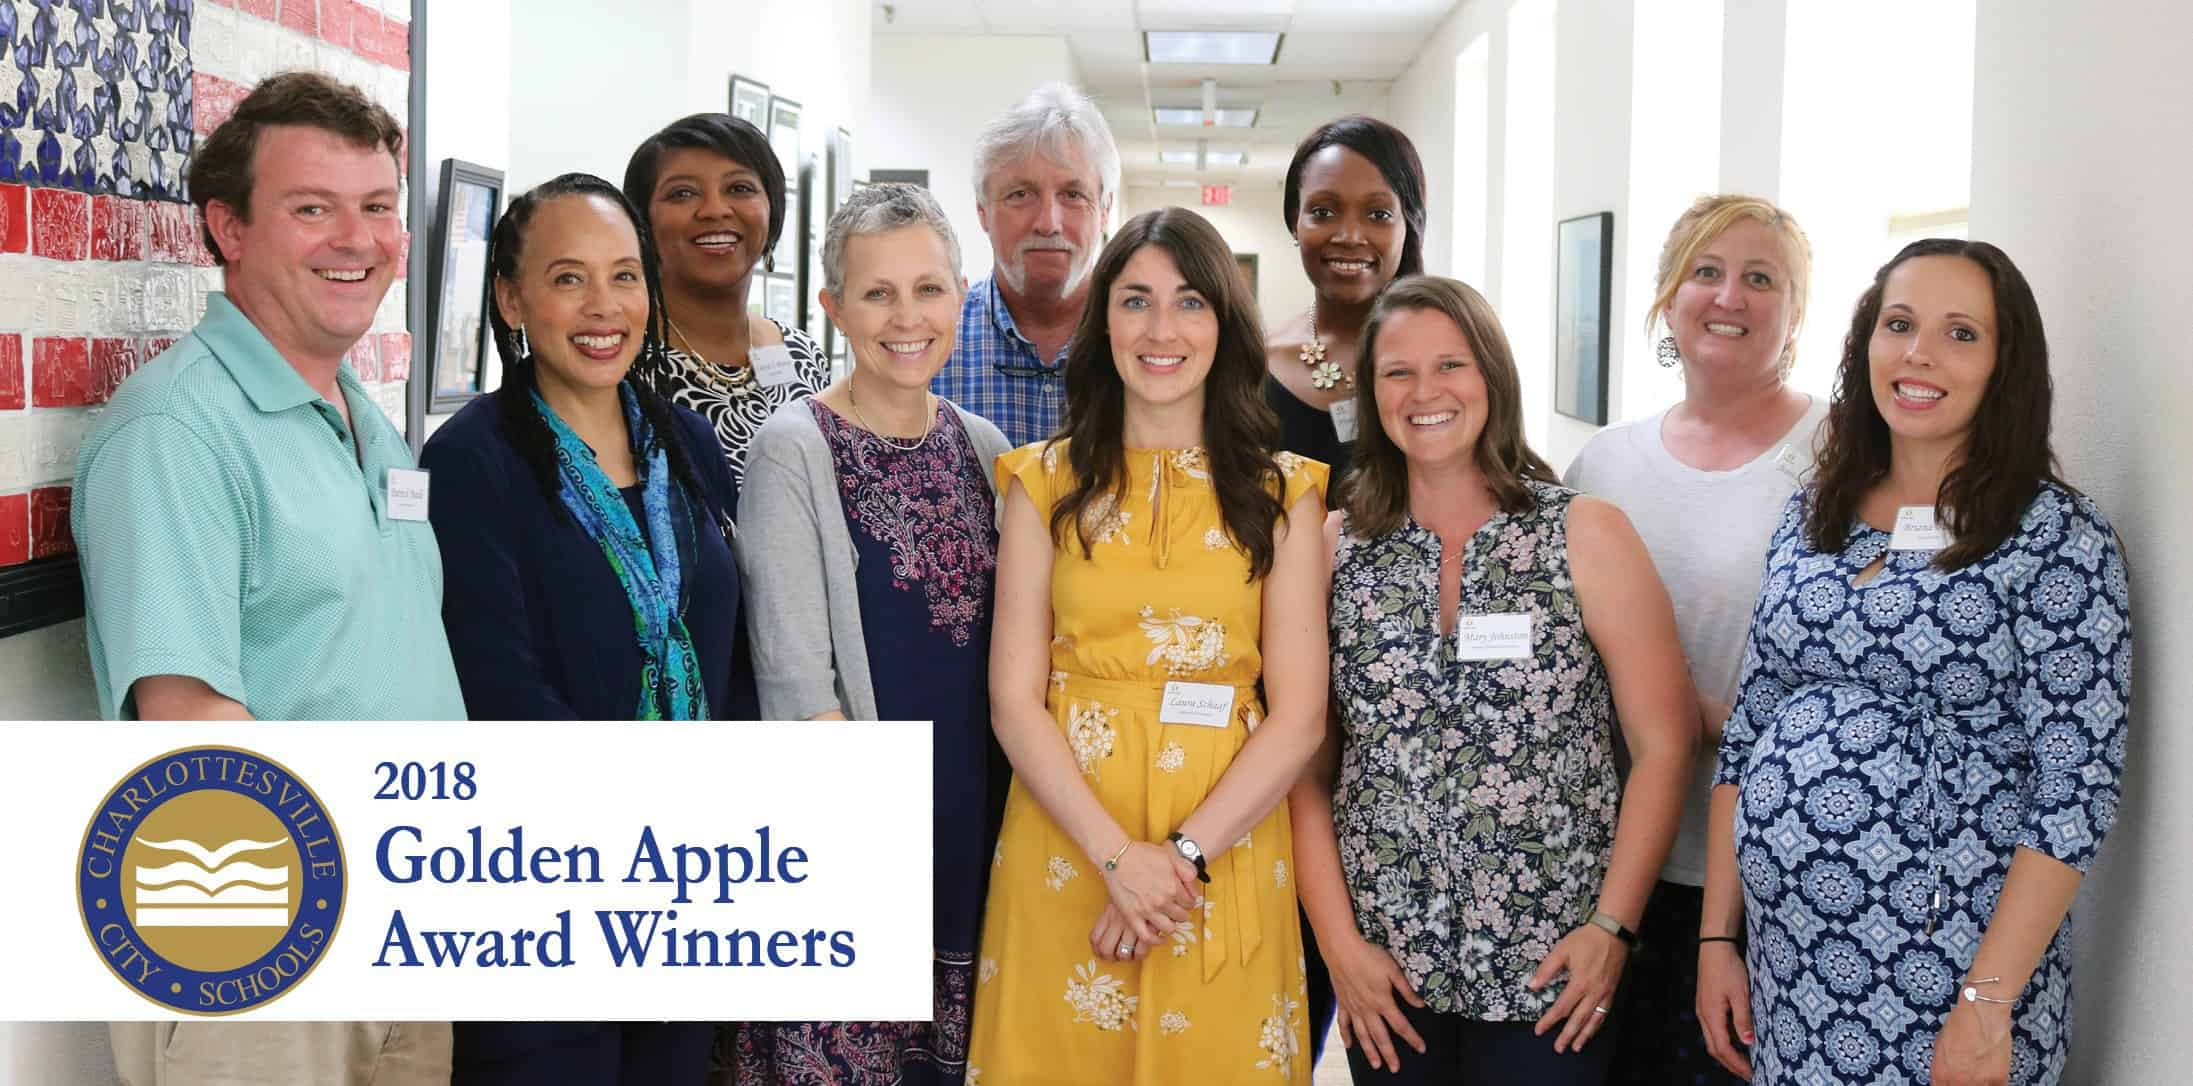 2018 Golden Apple Award winners